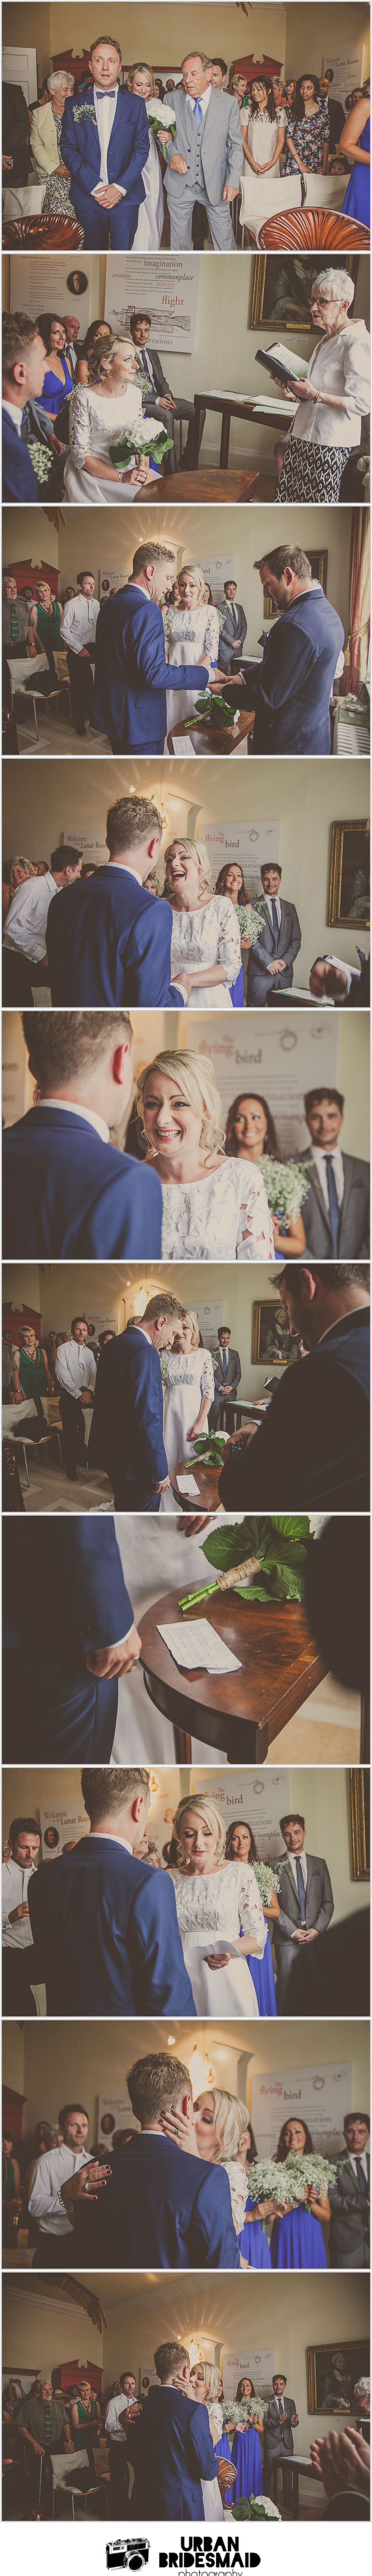 Erasmus darwin house wedding